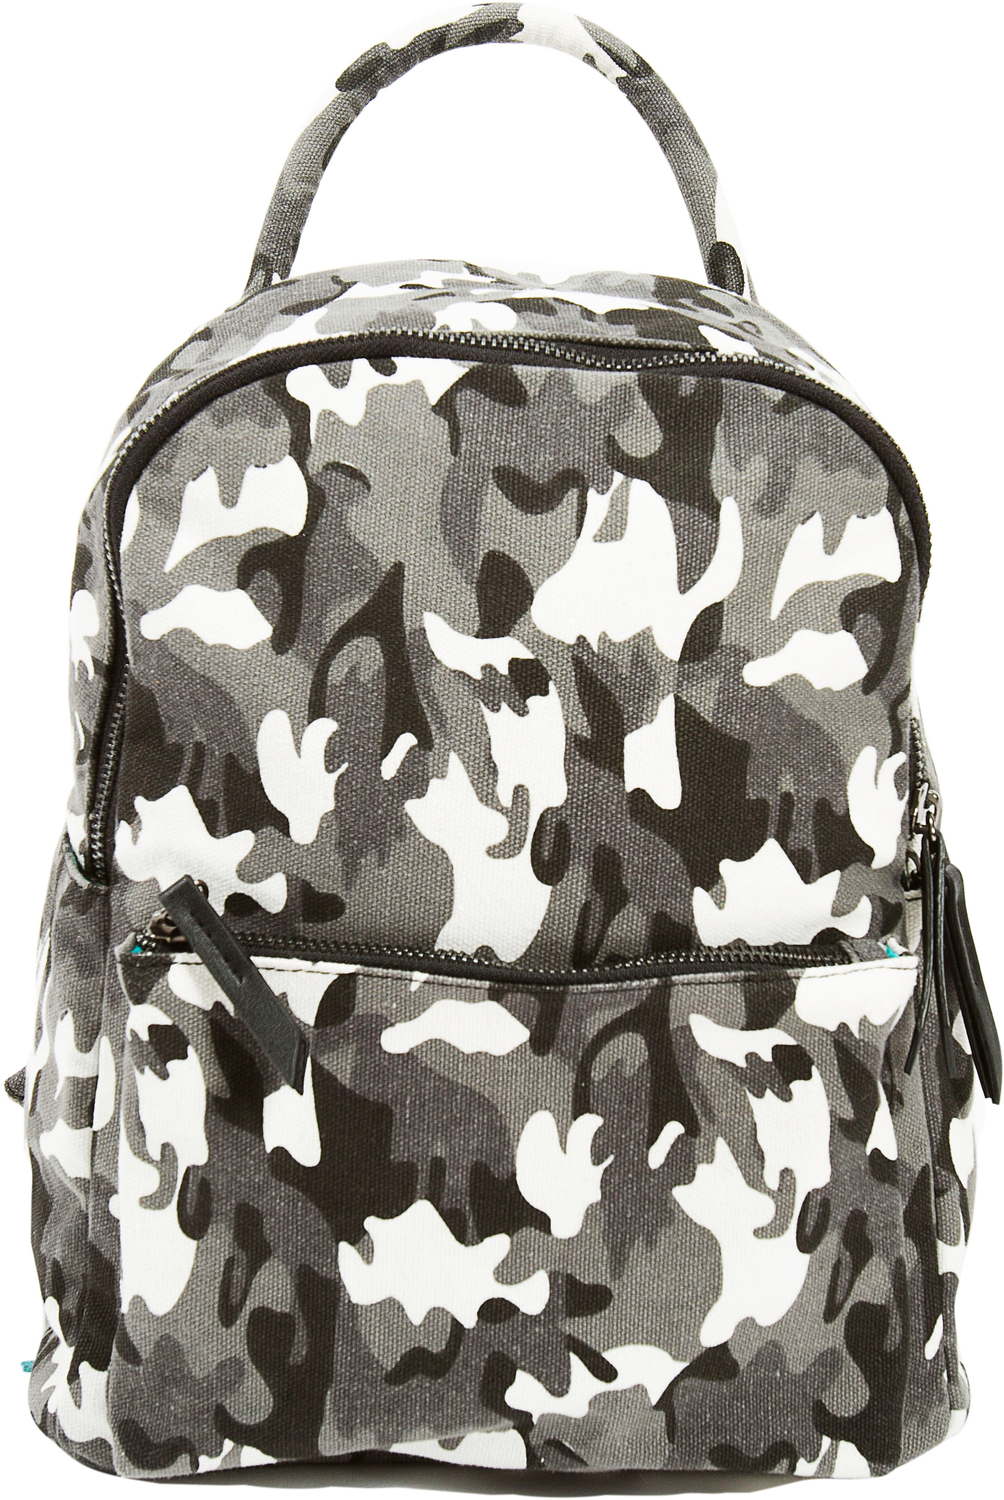 Alex Noir by H2Z Handbags - Alex Noir - Canvas Camo Backpack